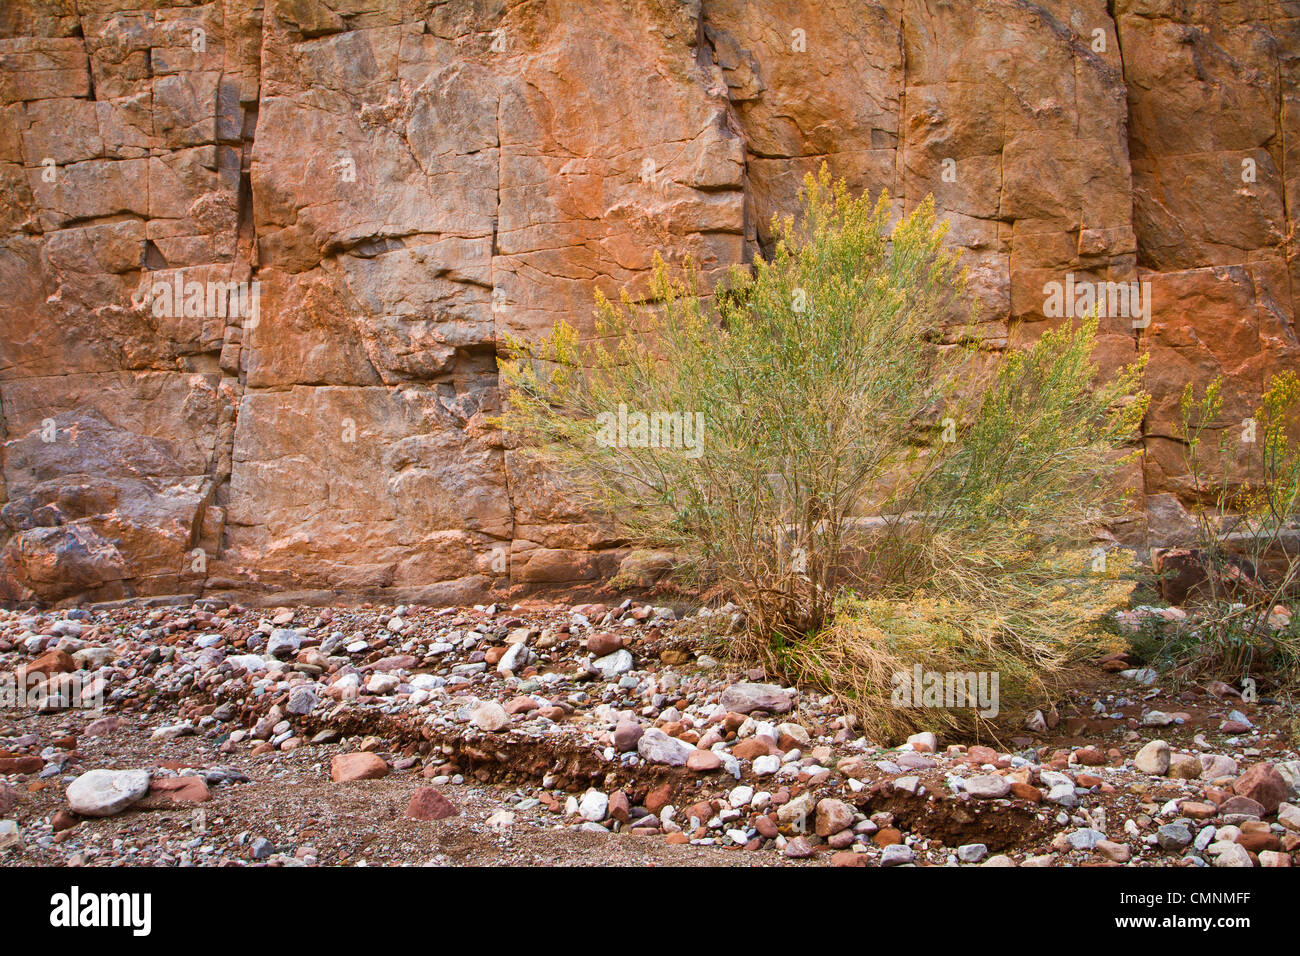 Desert brush against a red cliff in the inner gorge of the Grand Canyon. Monument Creek, Grand Canyon National Park, - Stock Image